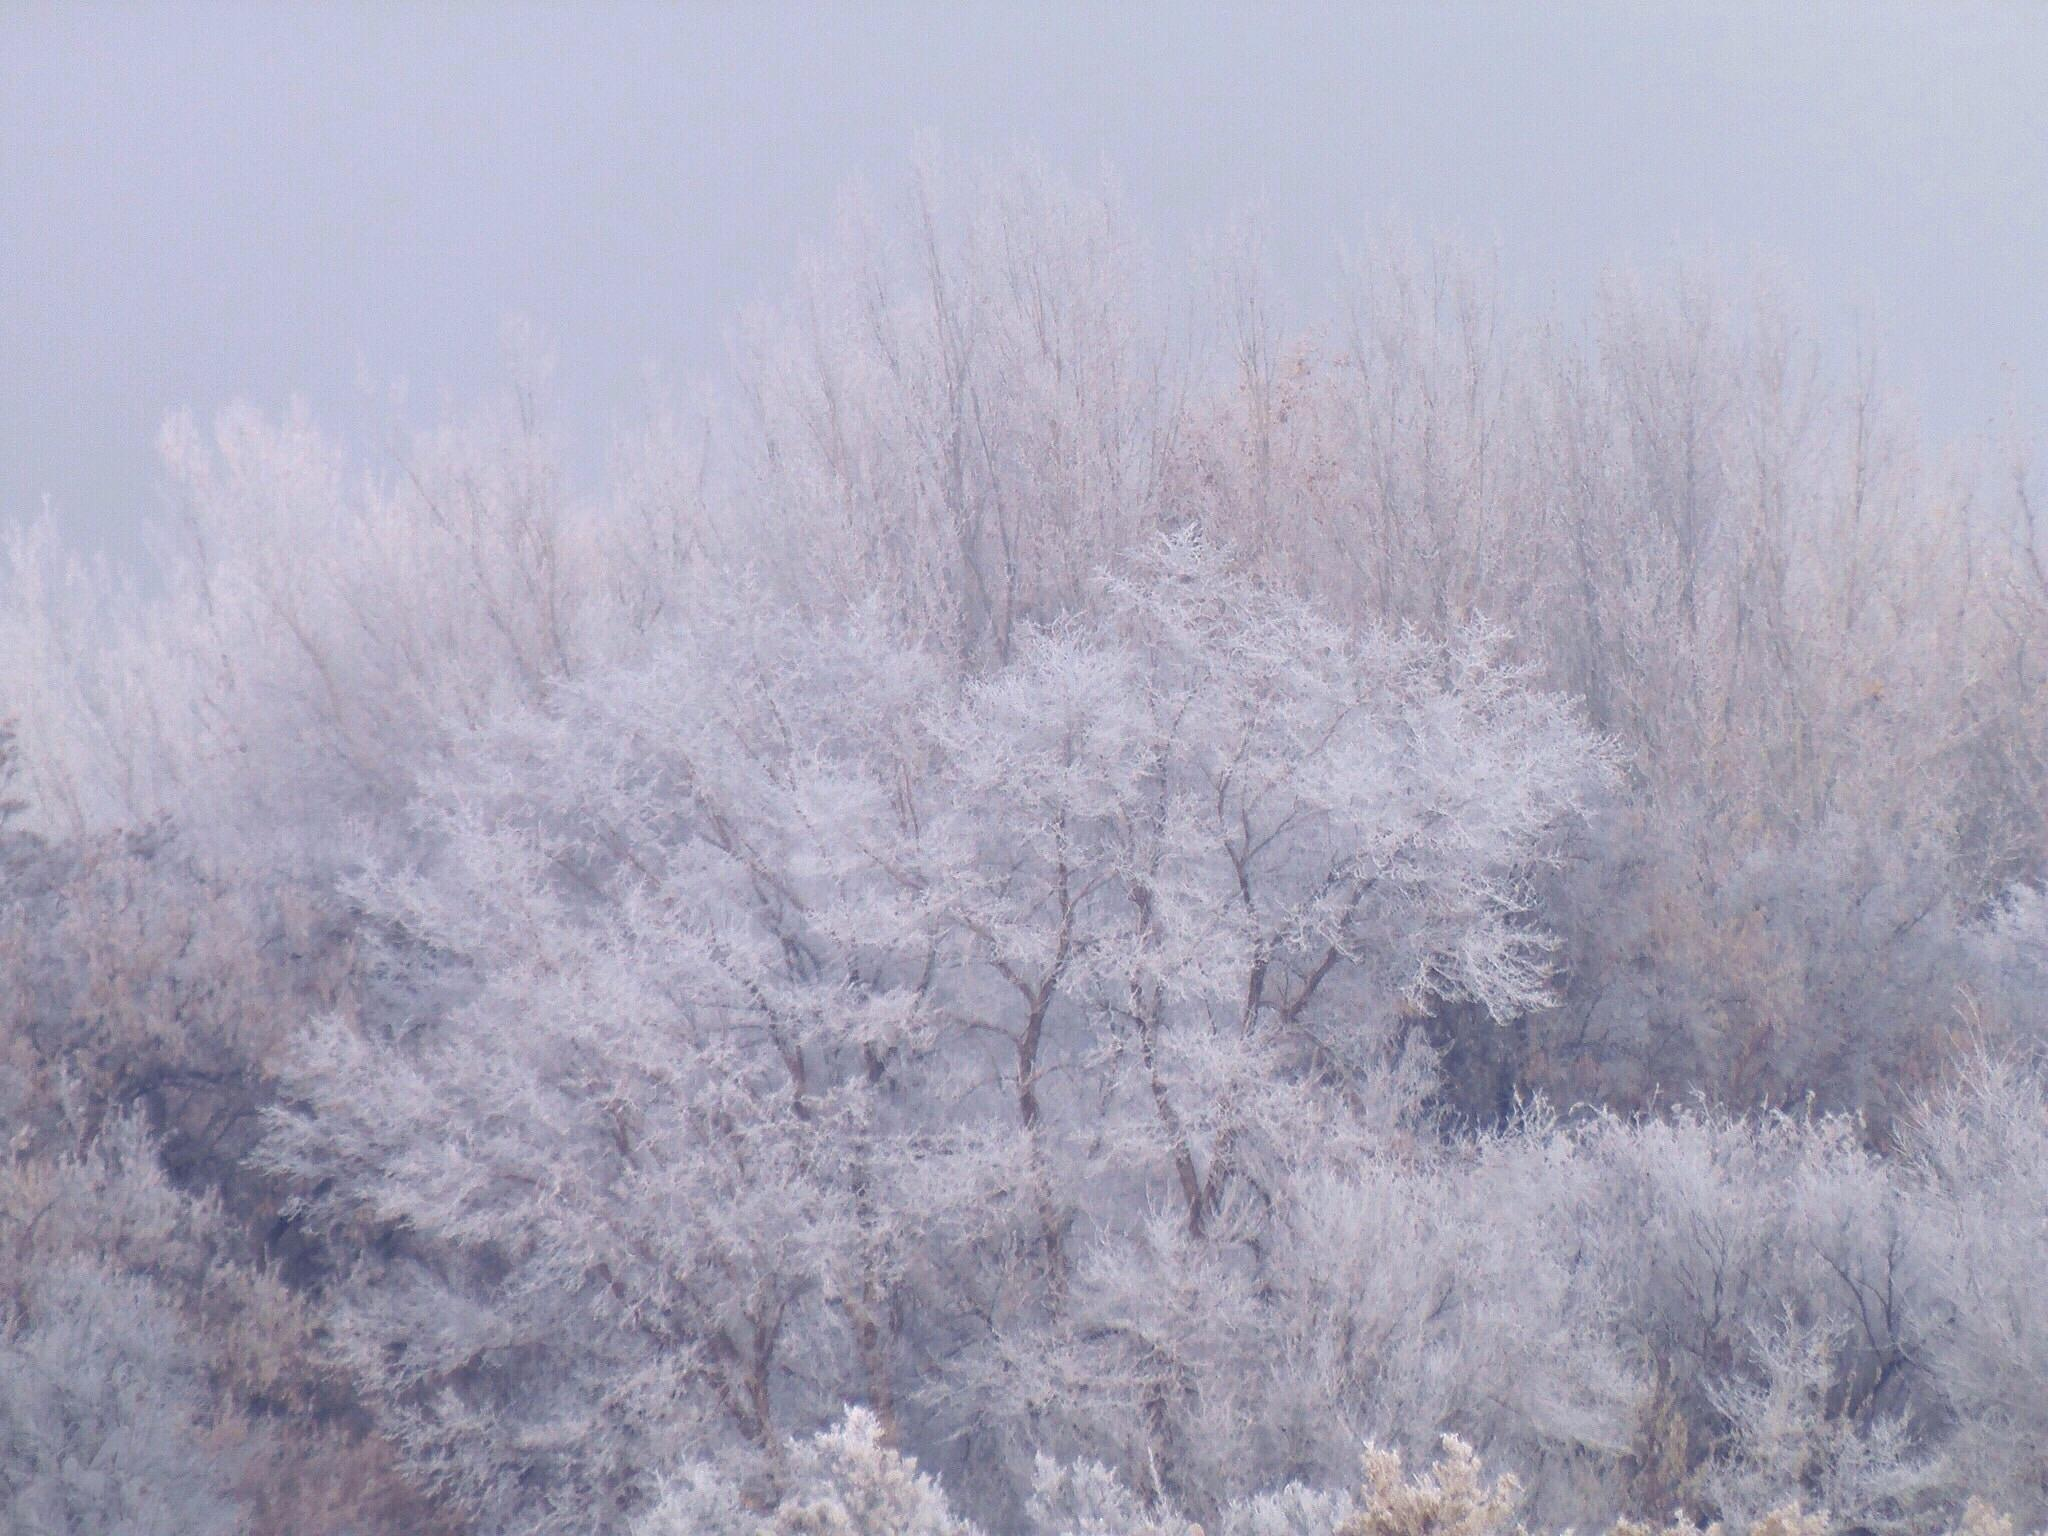 Trees With Hoarfrost In Fog by Stefani Madison